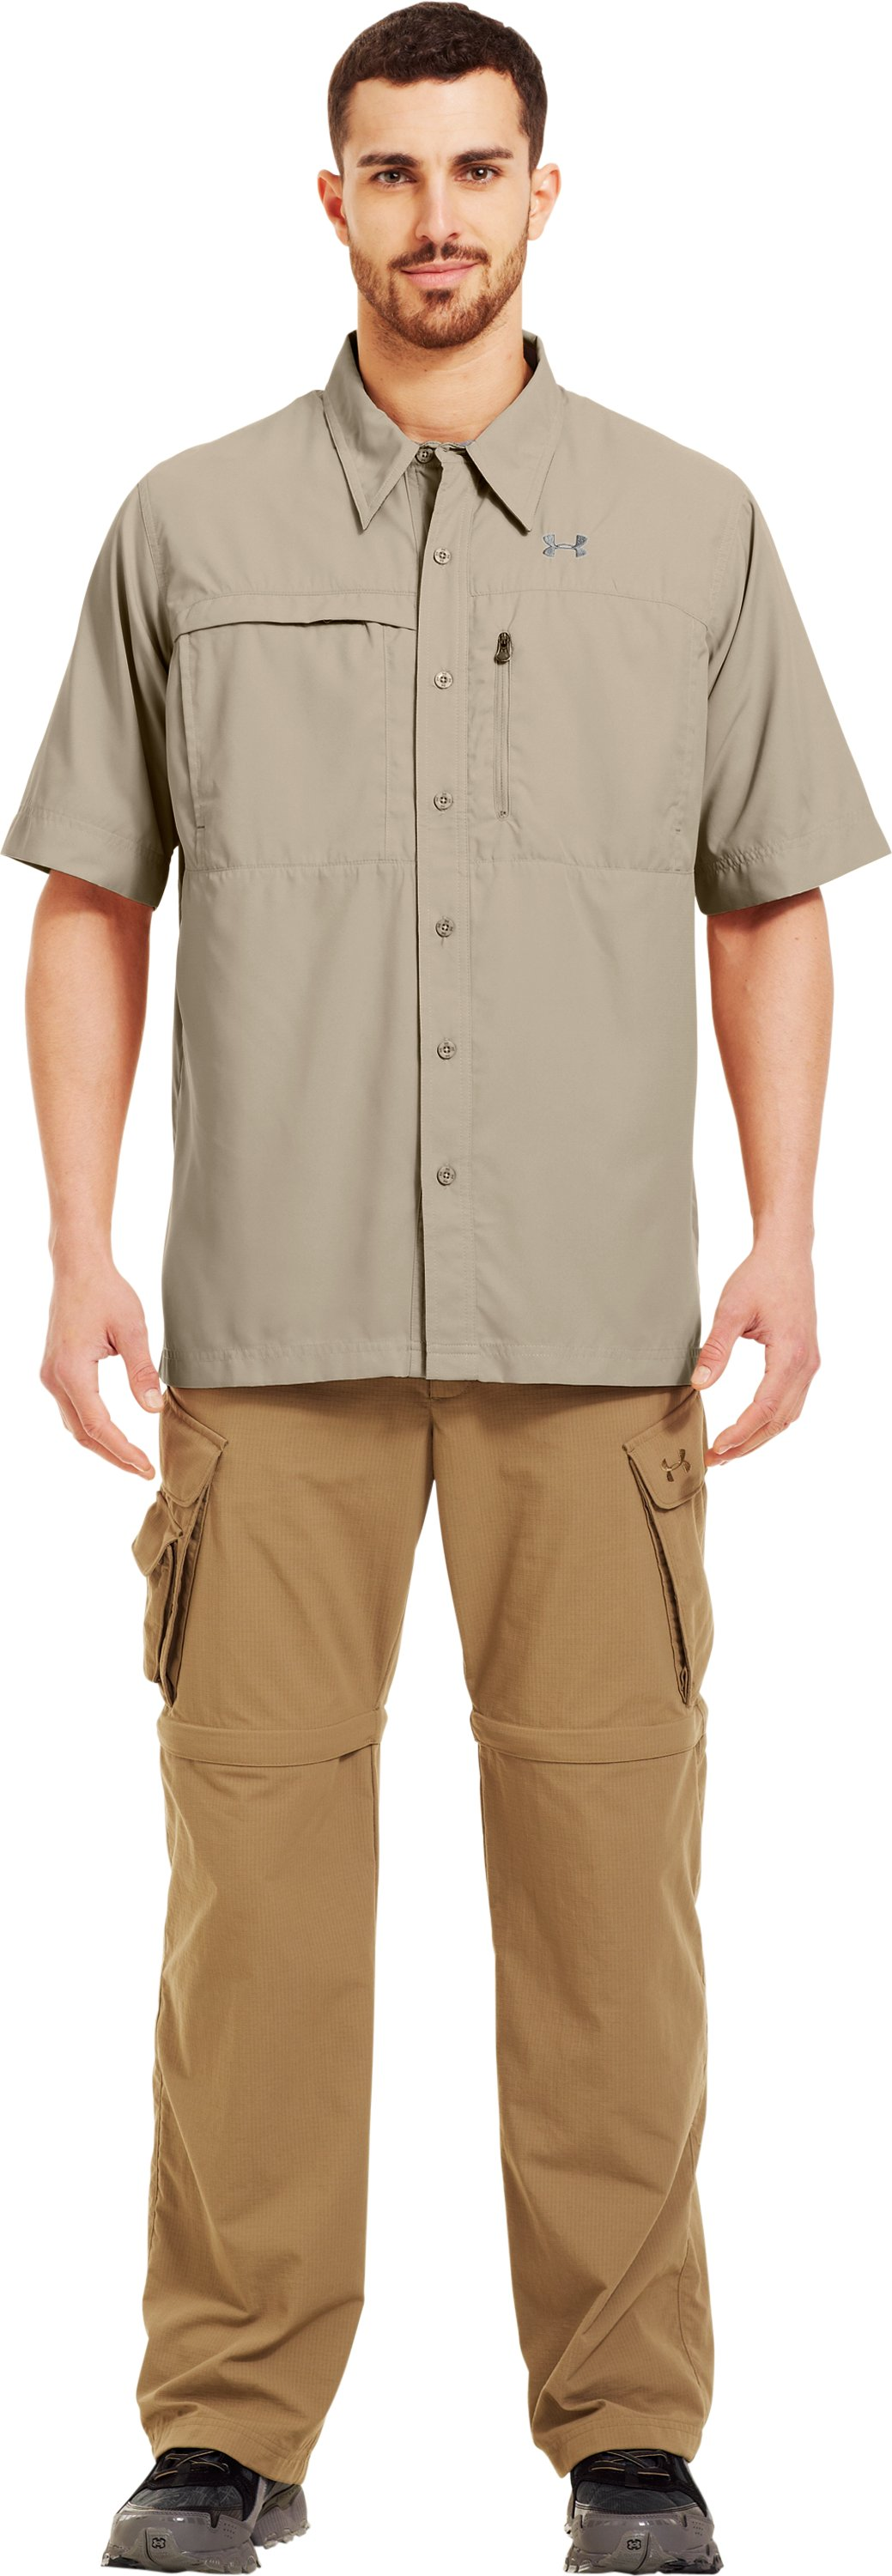 Men's Flats Guide Short Sleeve Shirt, Desert Sand, zoomed image